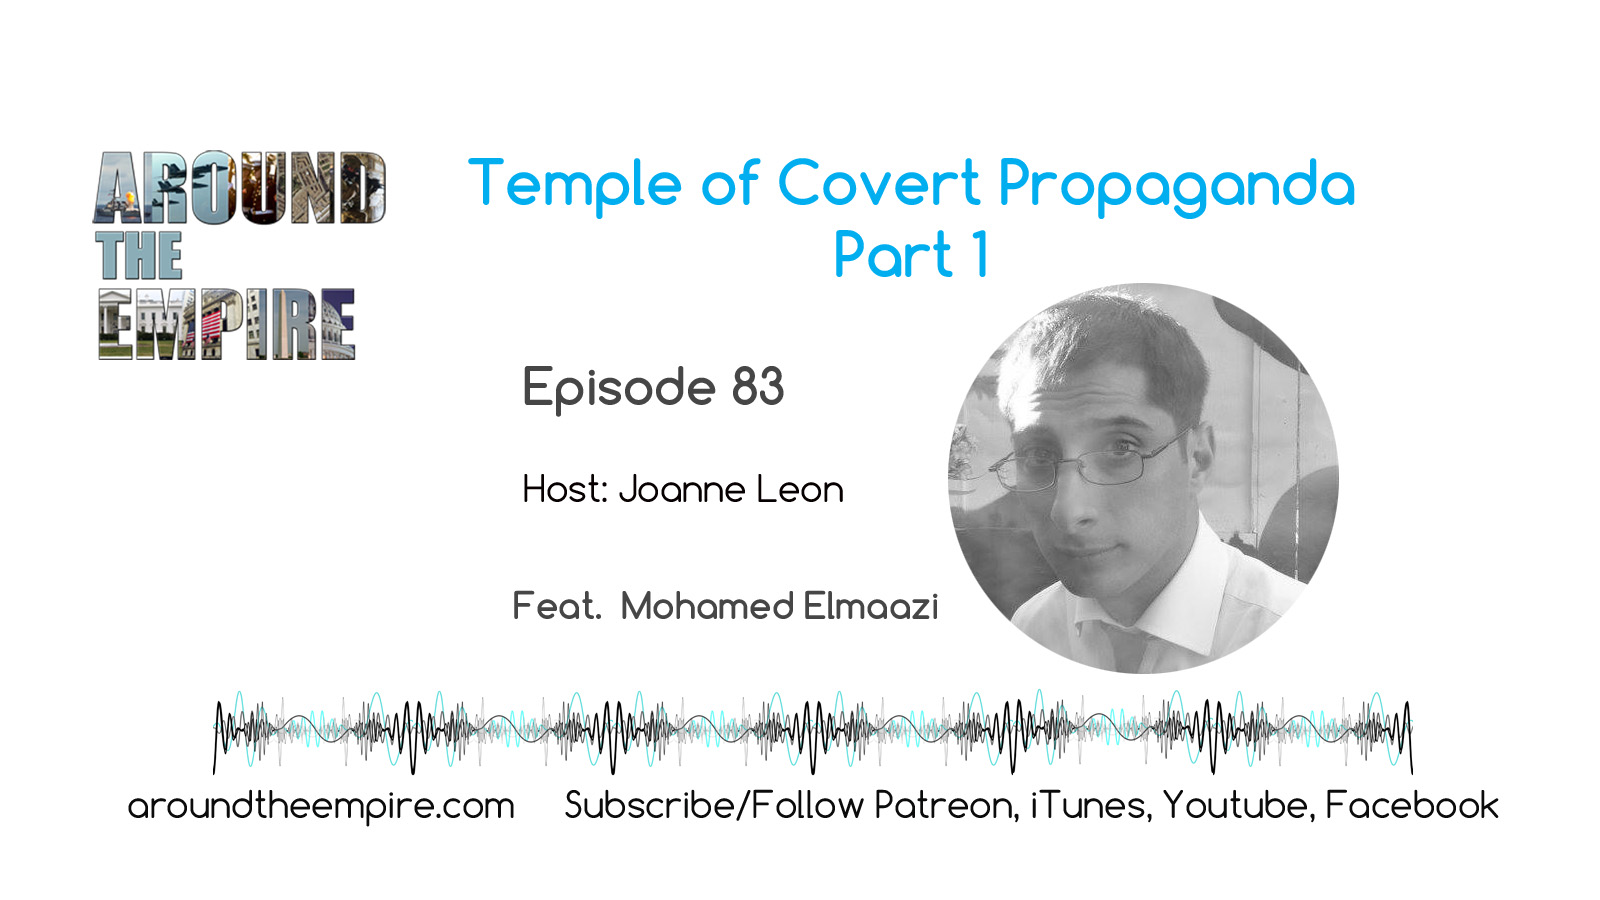 Ep83 Temple Covert Propaganda Part 1 feat Mohamed Elmaazi